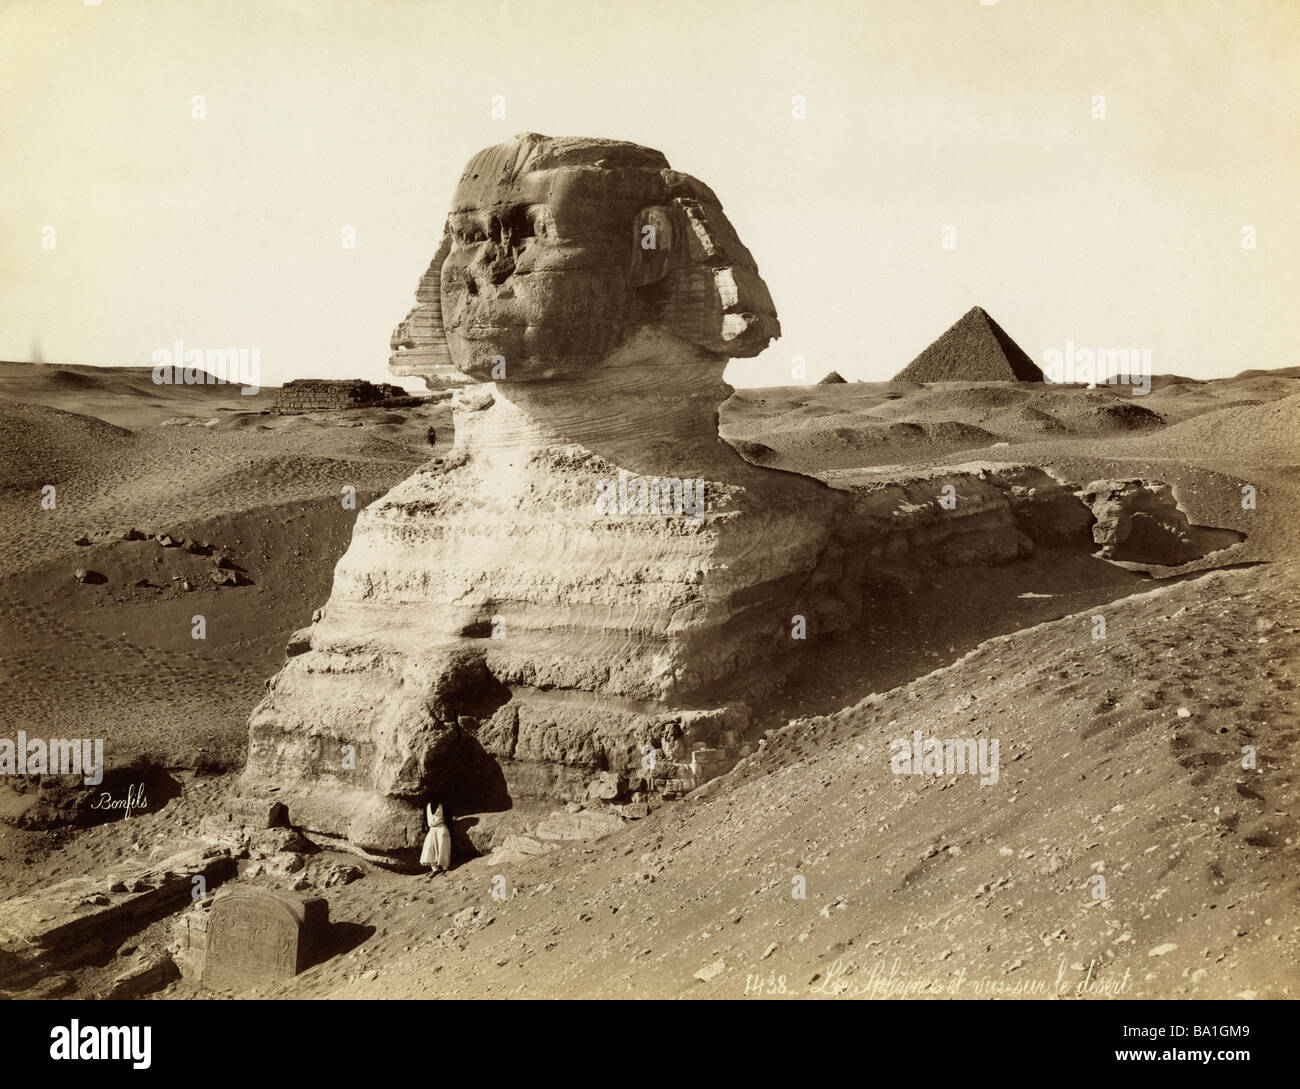 geography / travel, Egypt, Giza, Sphinx, photograph by Felix Bonfils (1831 - 1885), Africa, 19th century, historic, - Stock Image